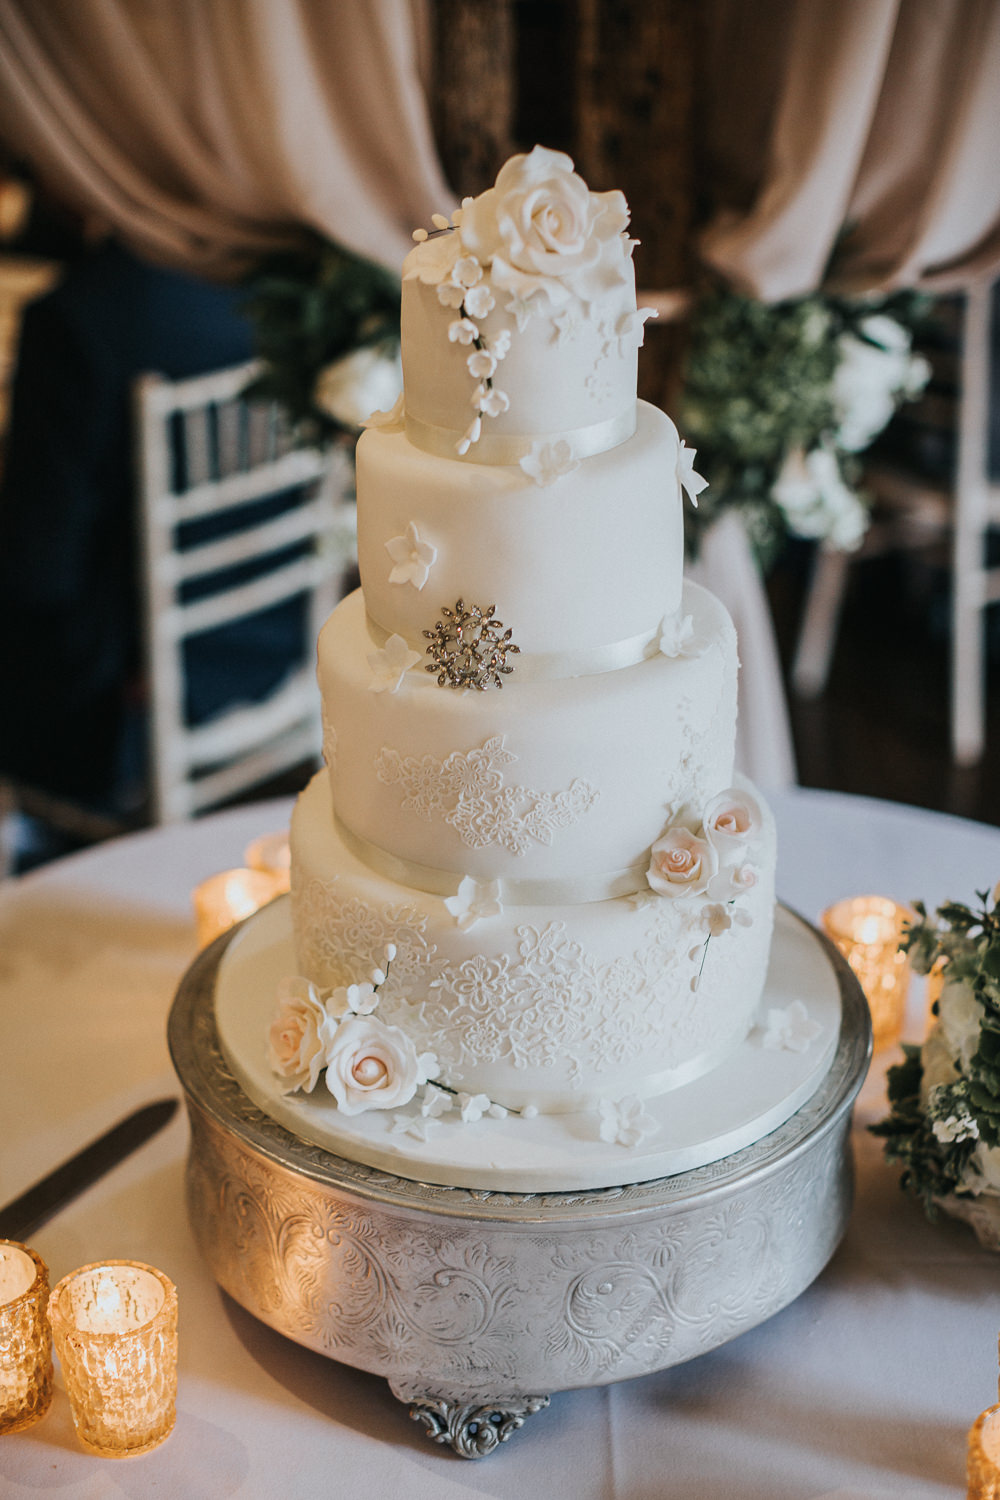 Bride Bridal Bouquet Traditional Classic Tiered Cake Royal Icing Loseley Park Wedding Kit Myers Photography